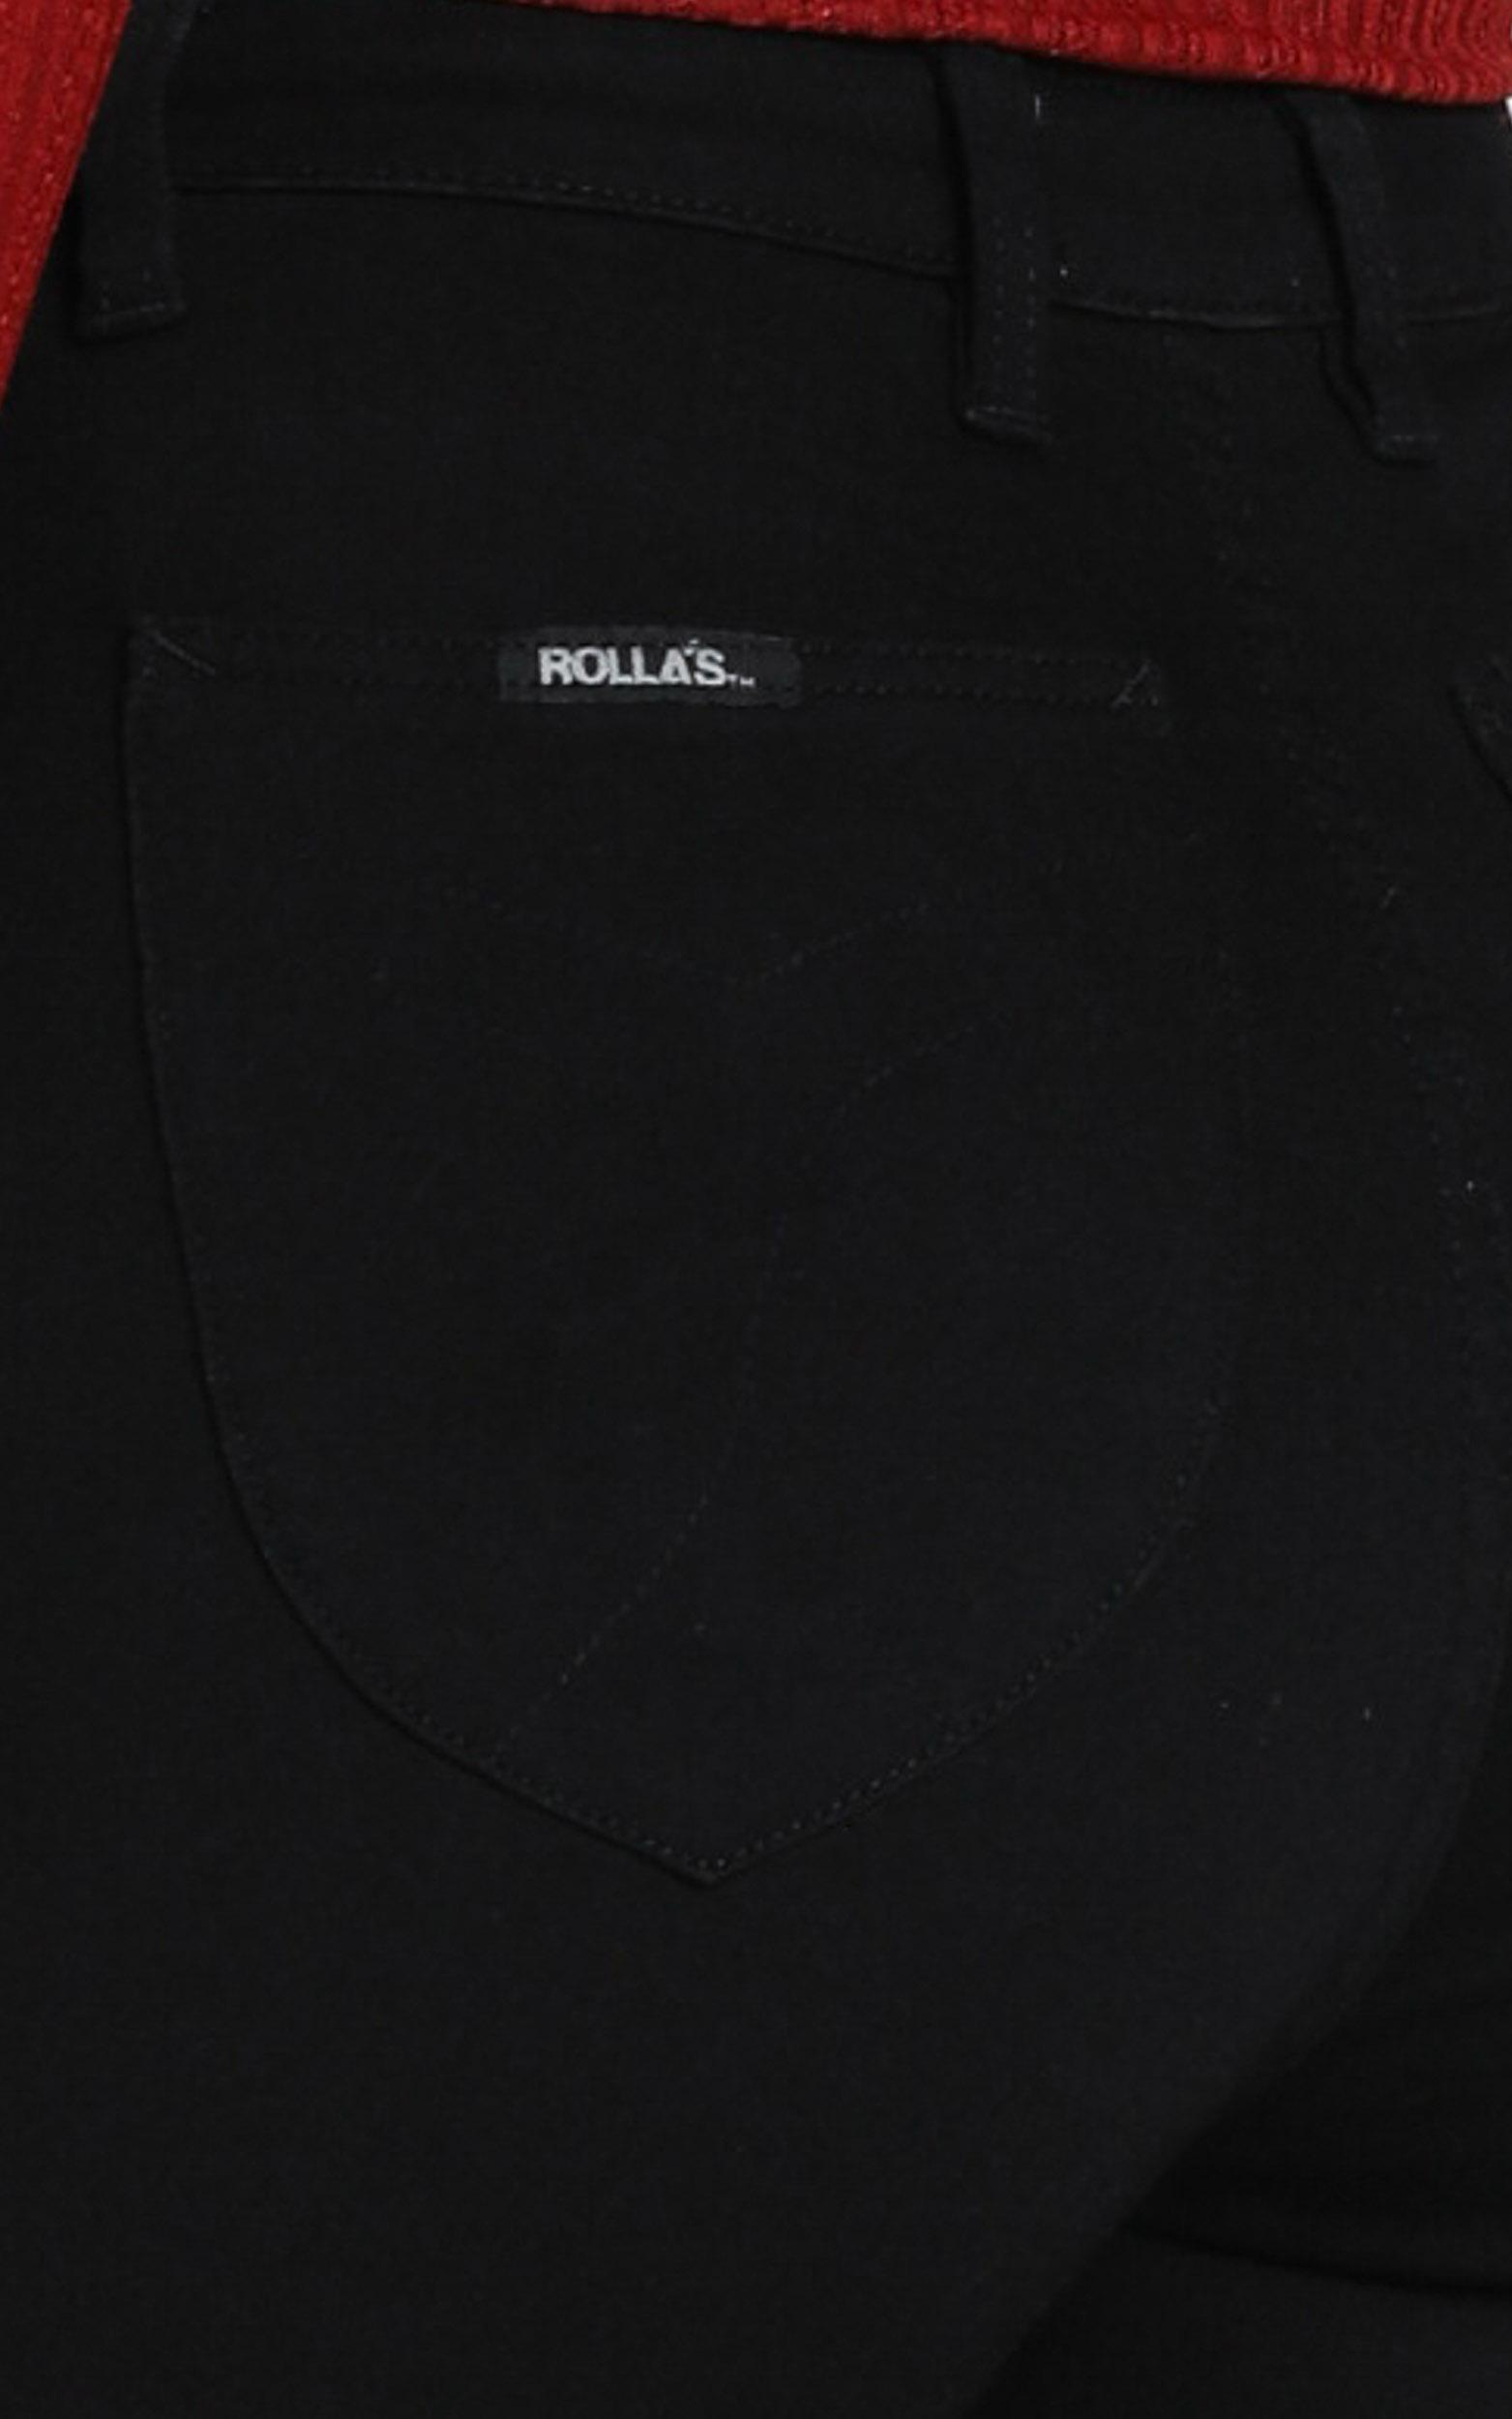 Rollas - Eastcoast Ankle High Rise Jean in galaxy black - 14 (XL), Black, hi-res image number null